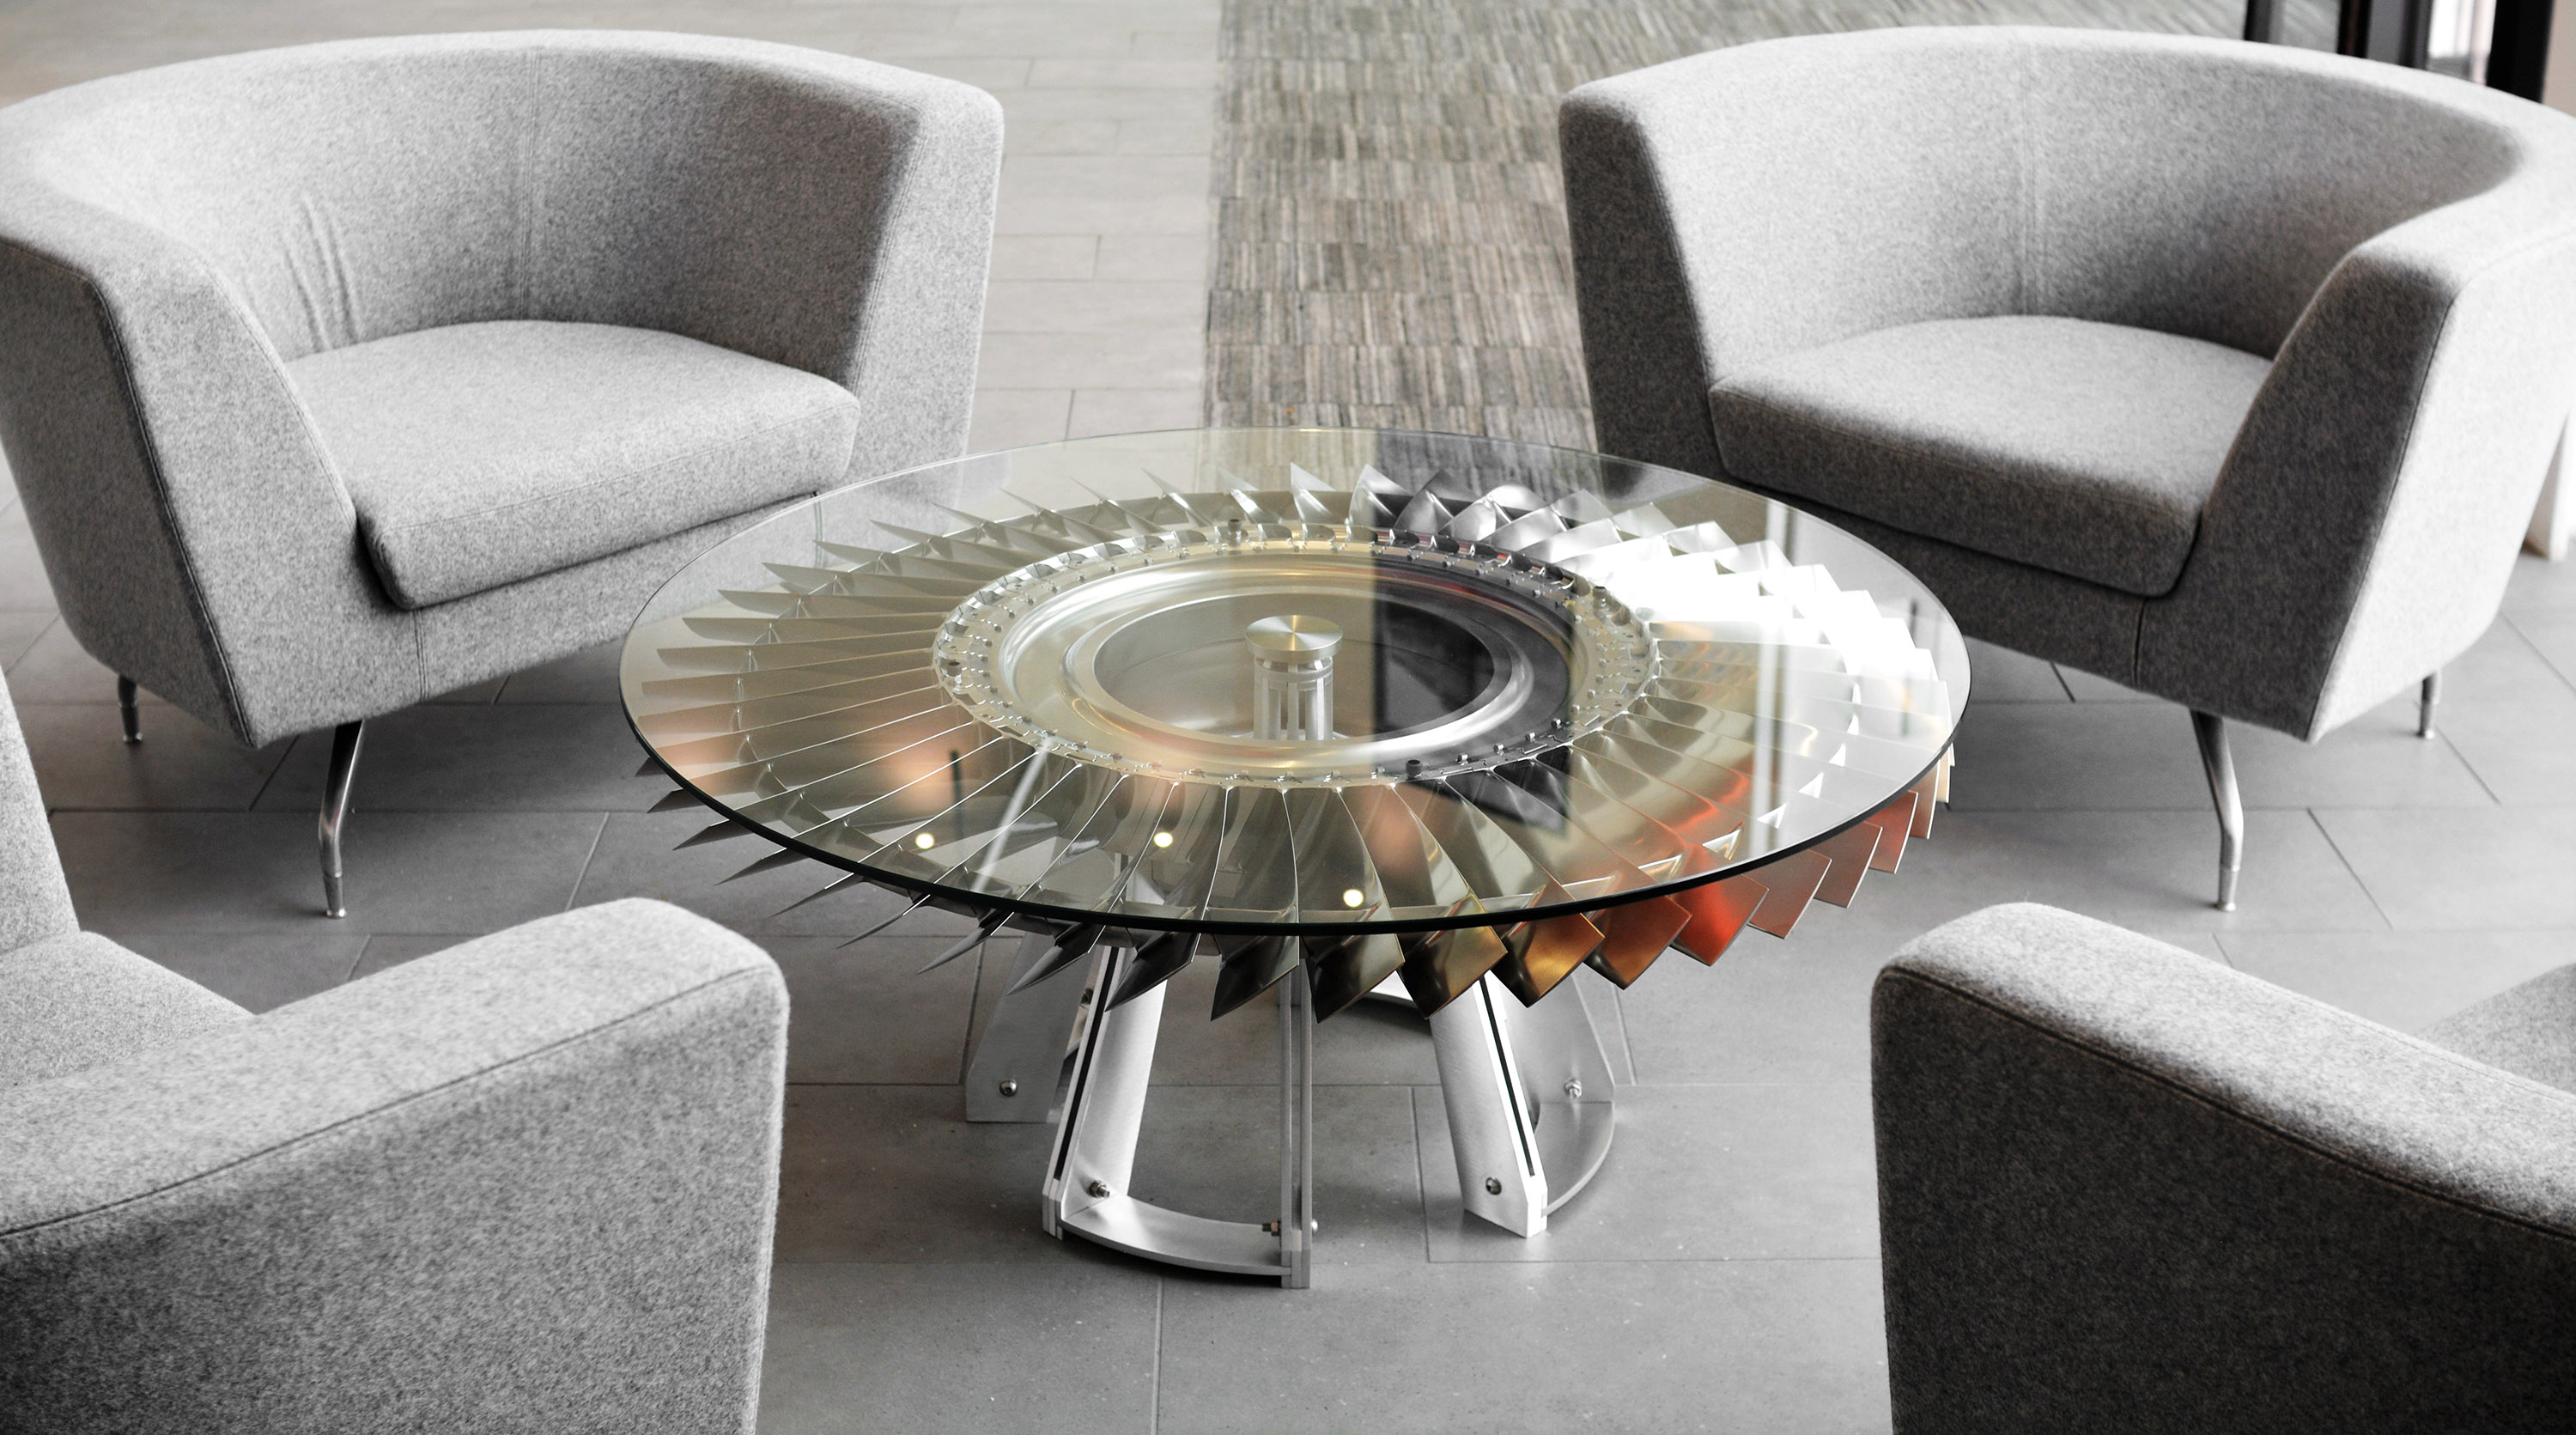 Pegasus Coffee Table by OS31